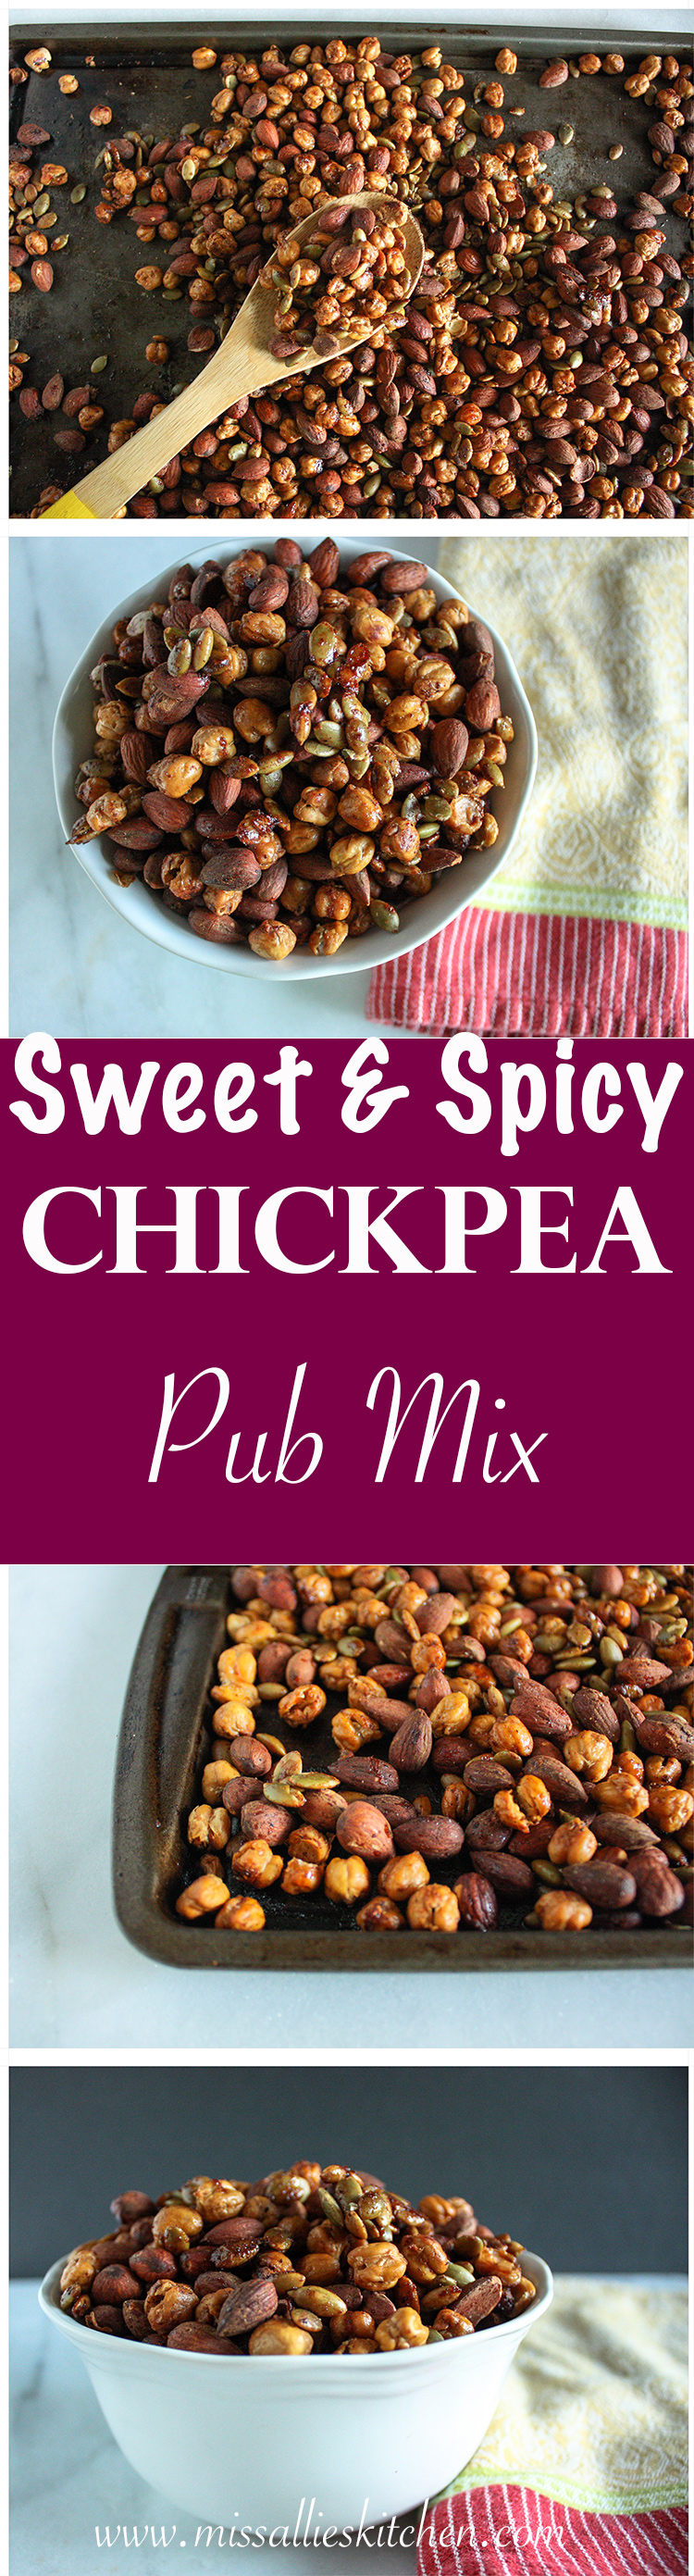 Sweet Spicy Chickpea Pub Mix-Miss Allies Kitchen